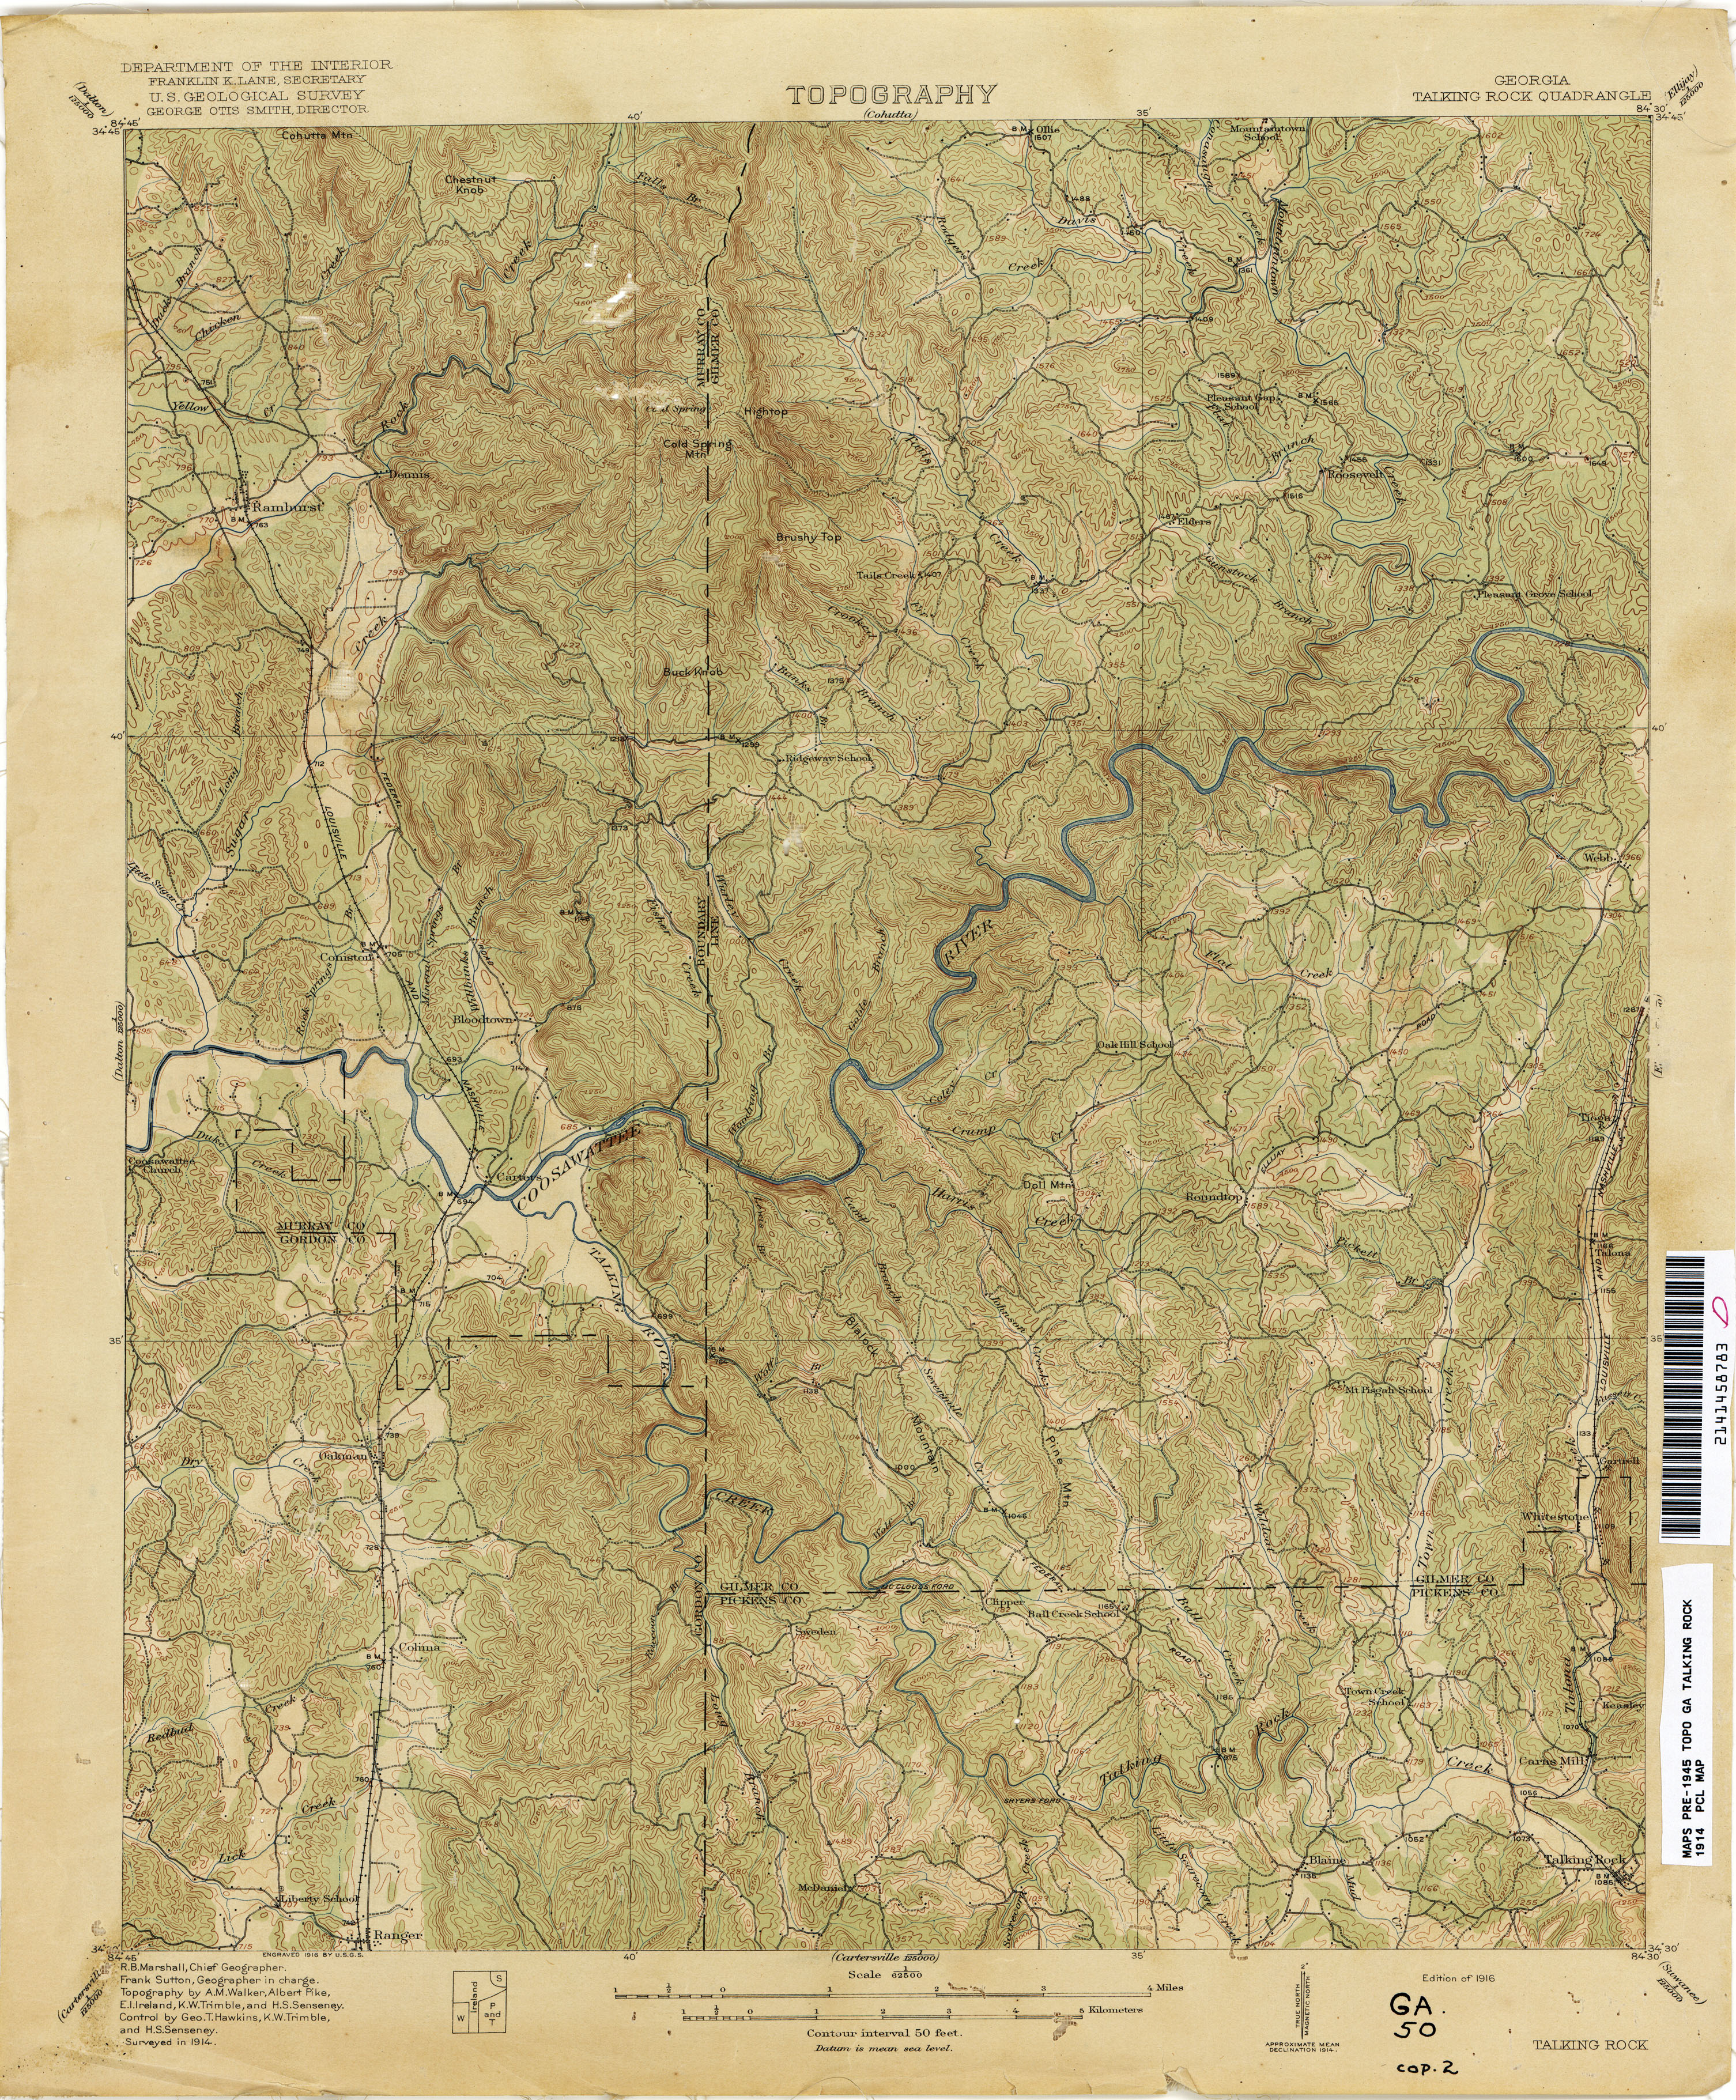 Show Map Of Georgia.Georgia Historical Topographic Maps Perry Castaneda Map Collection